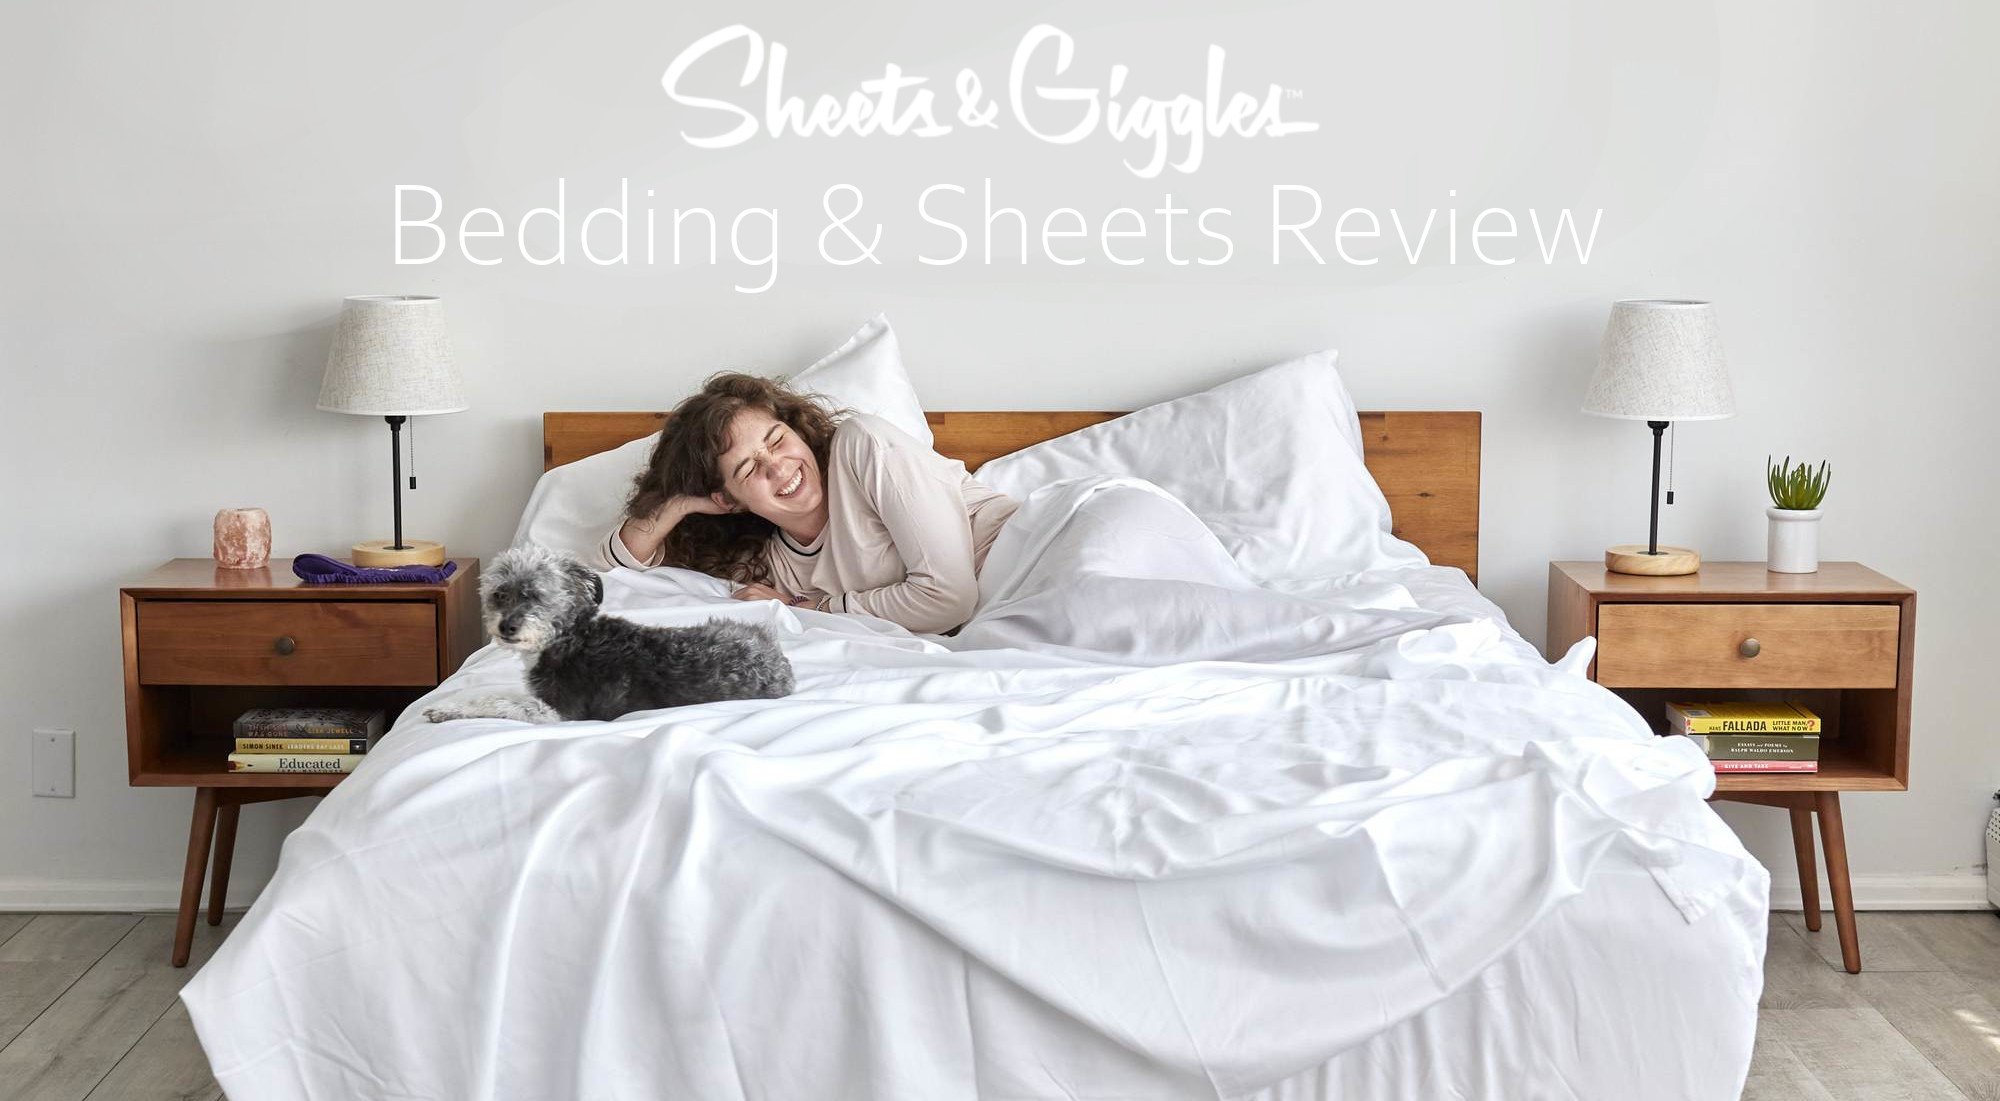 Sheets & Giggles bedding review